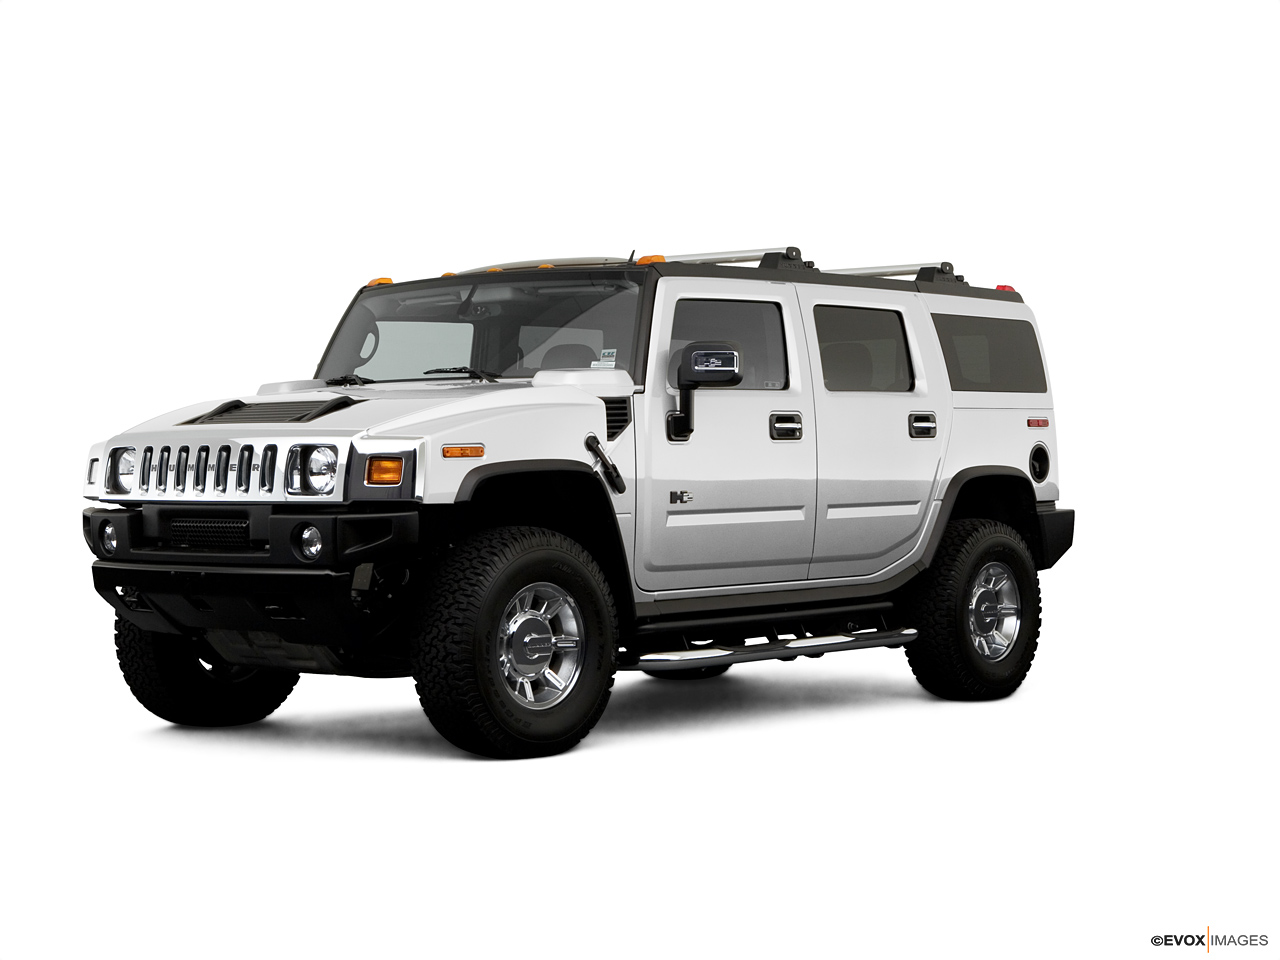 hummer service by top rated mechanics yourmechanic. Black Bedroom Furniture Sets. Home Design Ideas